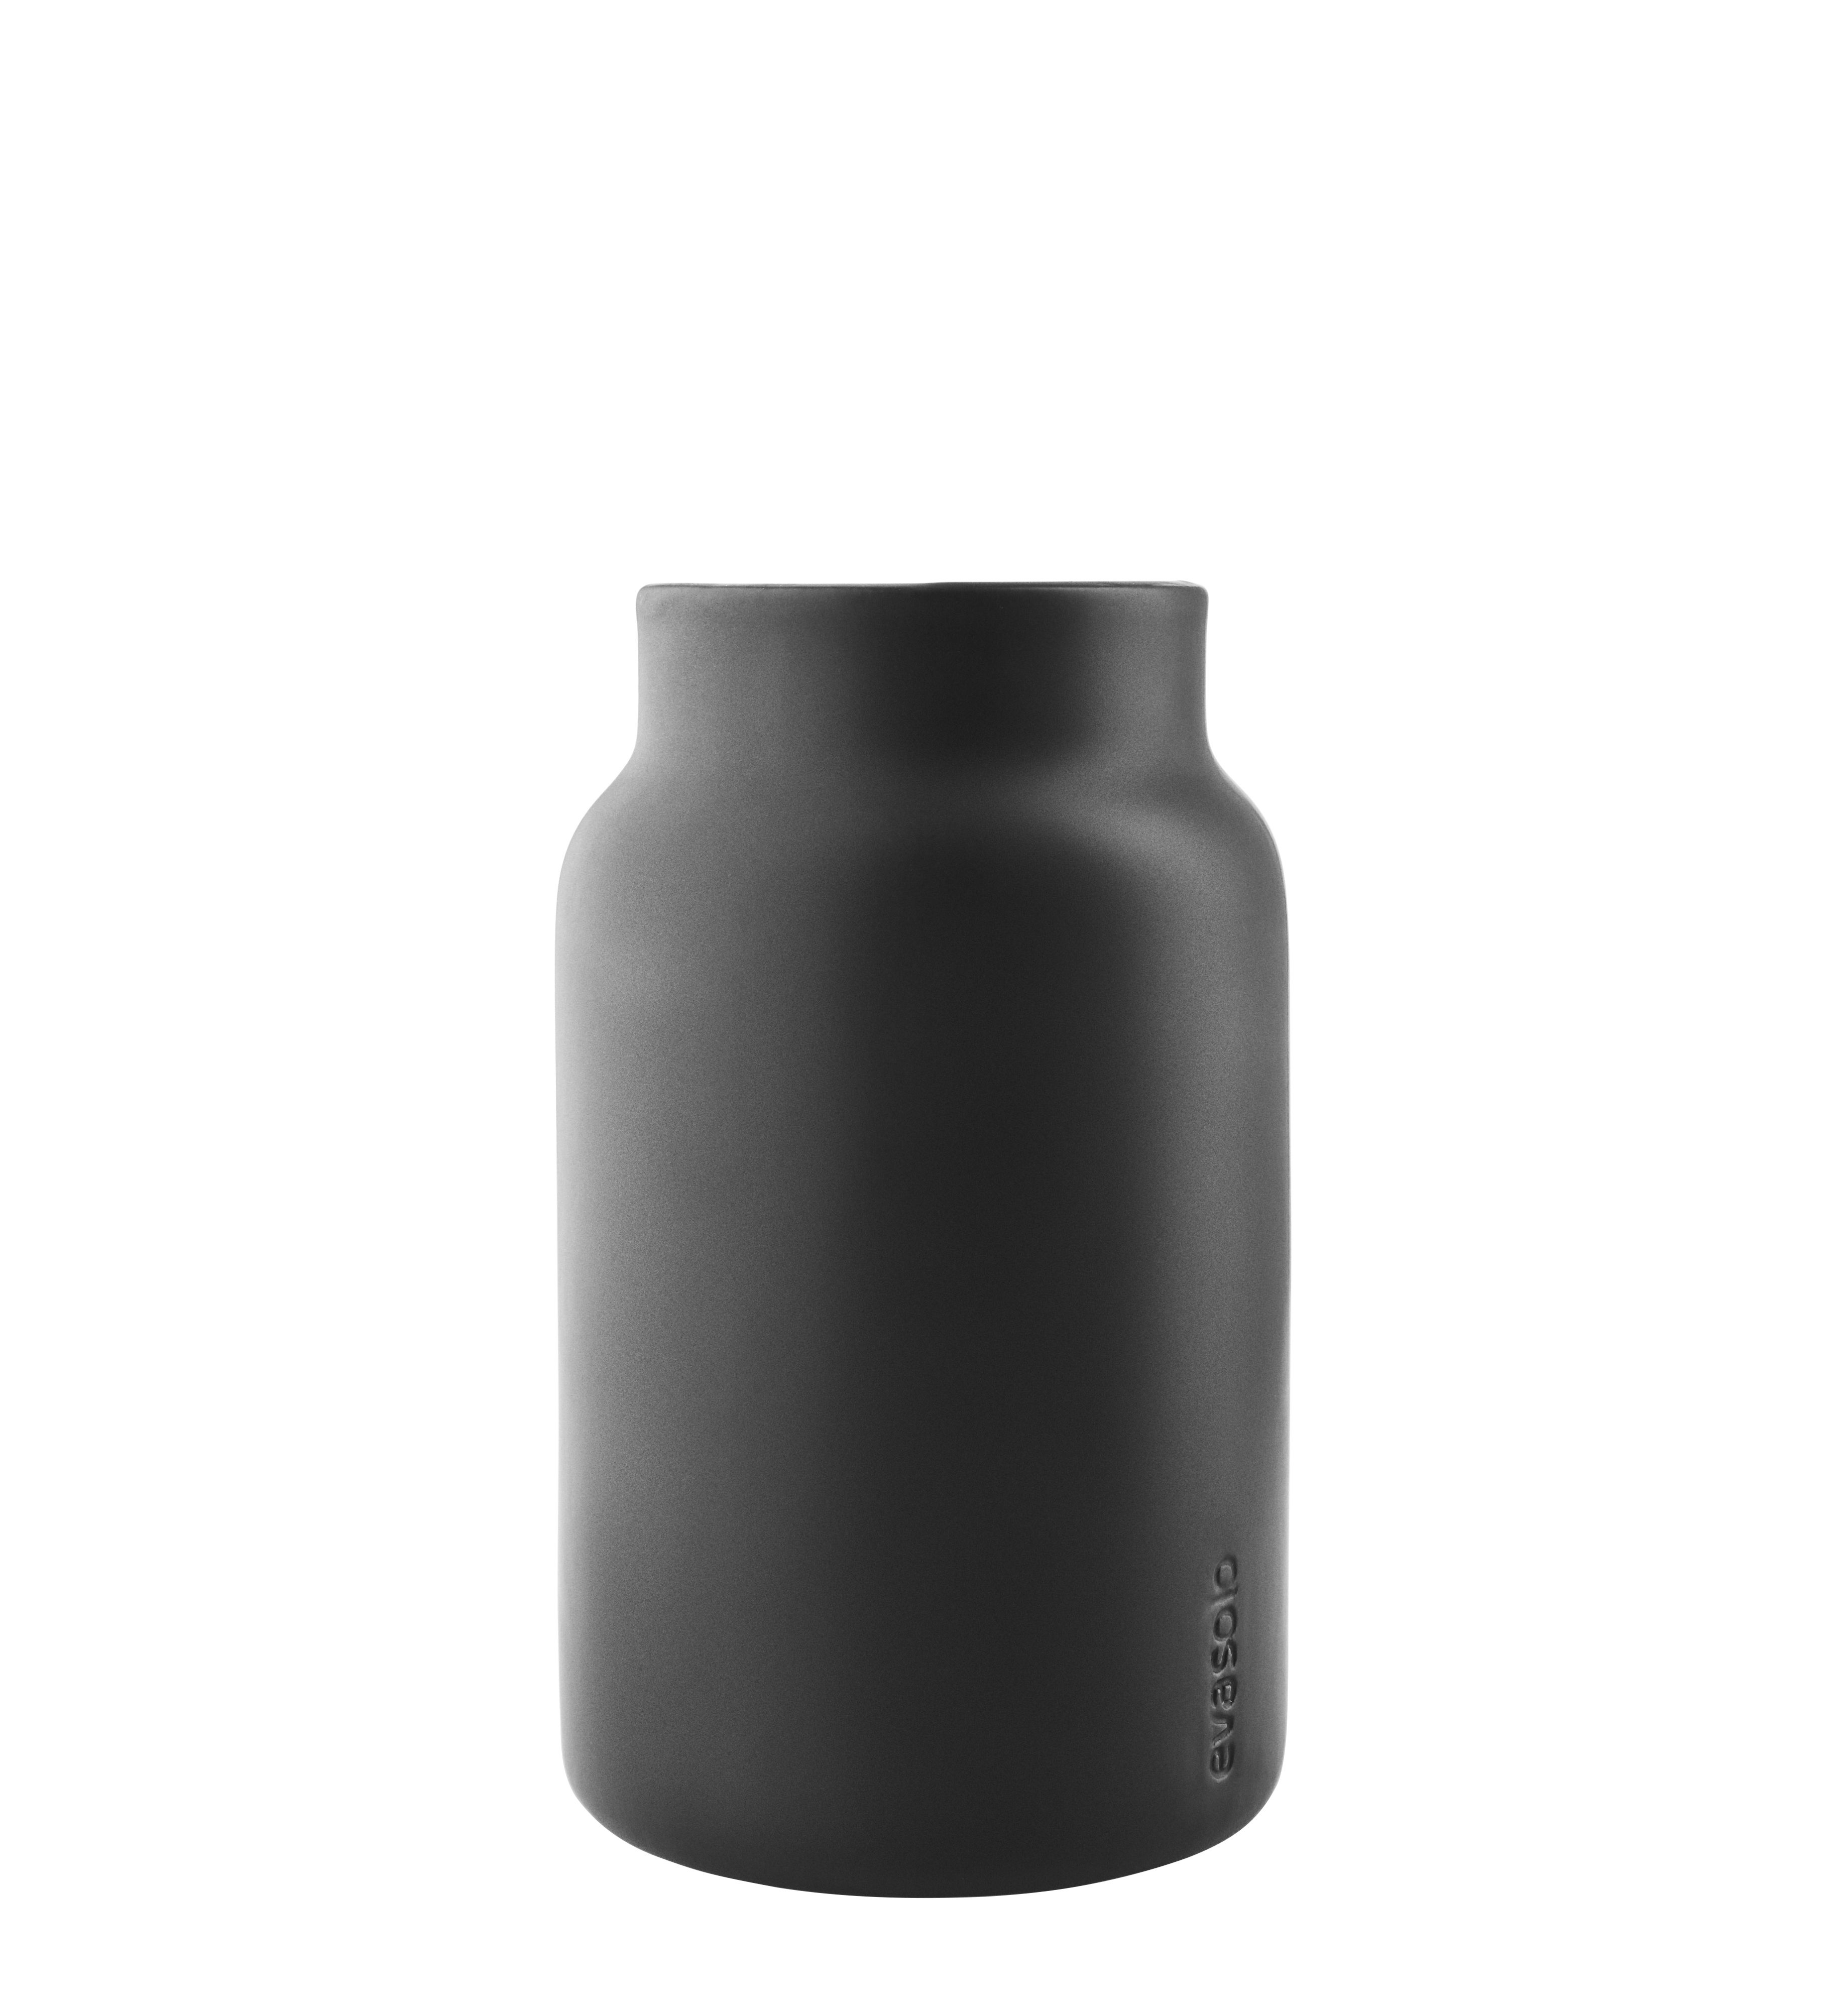 Accessories - Bathroom Accessories - Pot - / Multifunctional jar by Eva Solo - Matt black - Ceramic